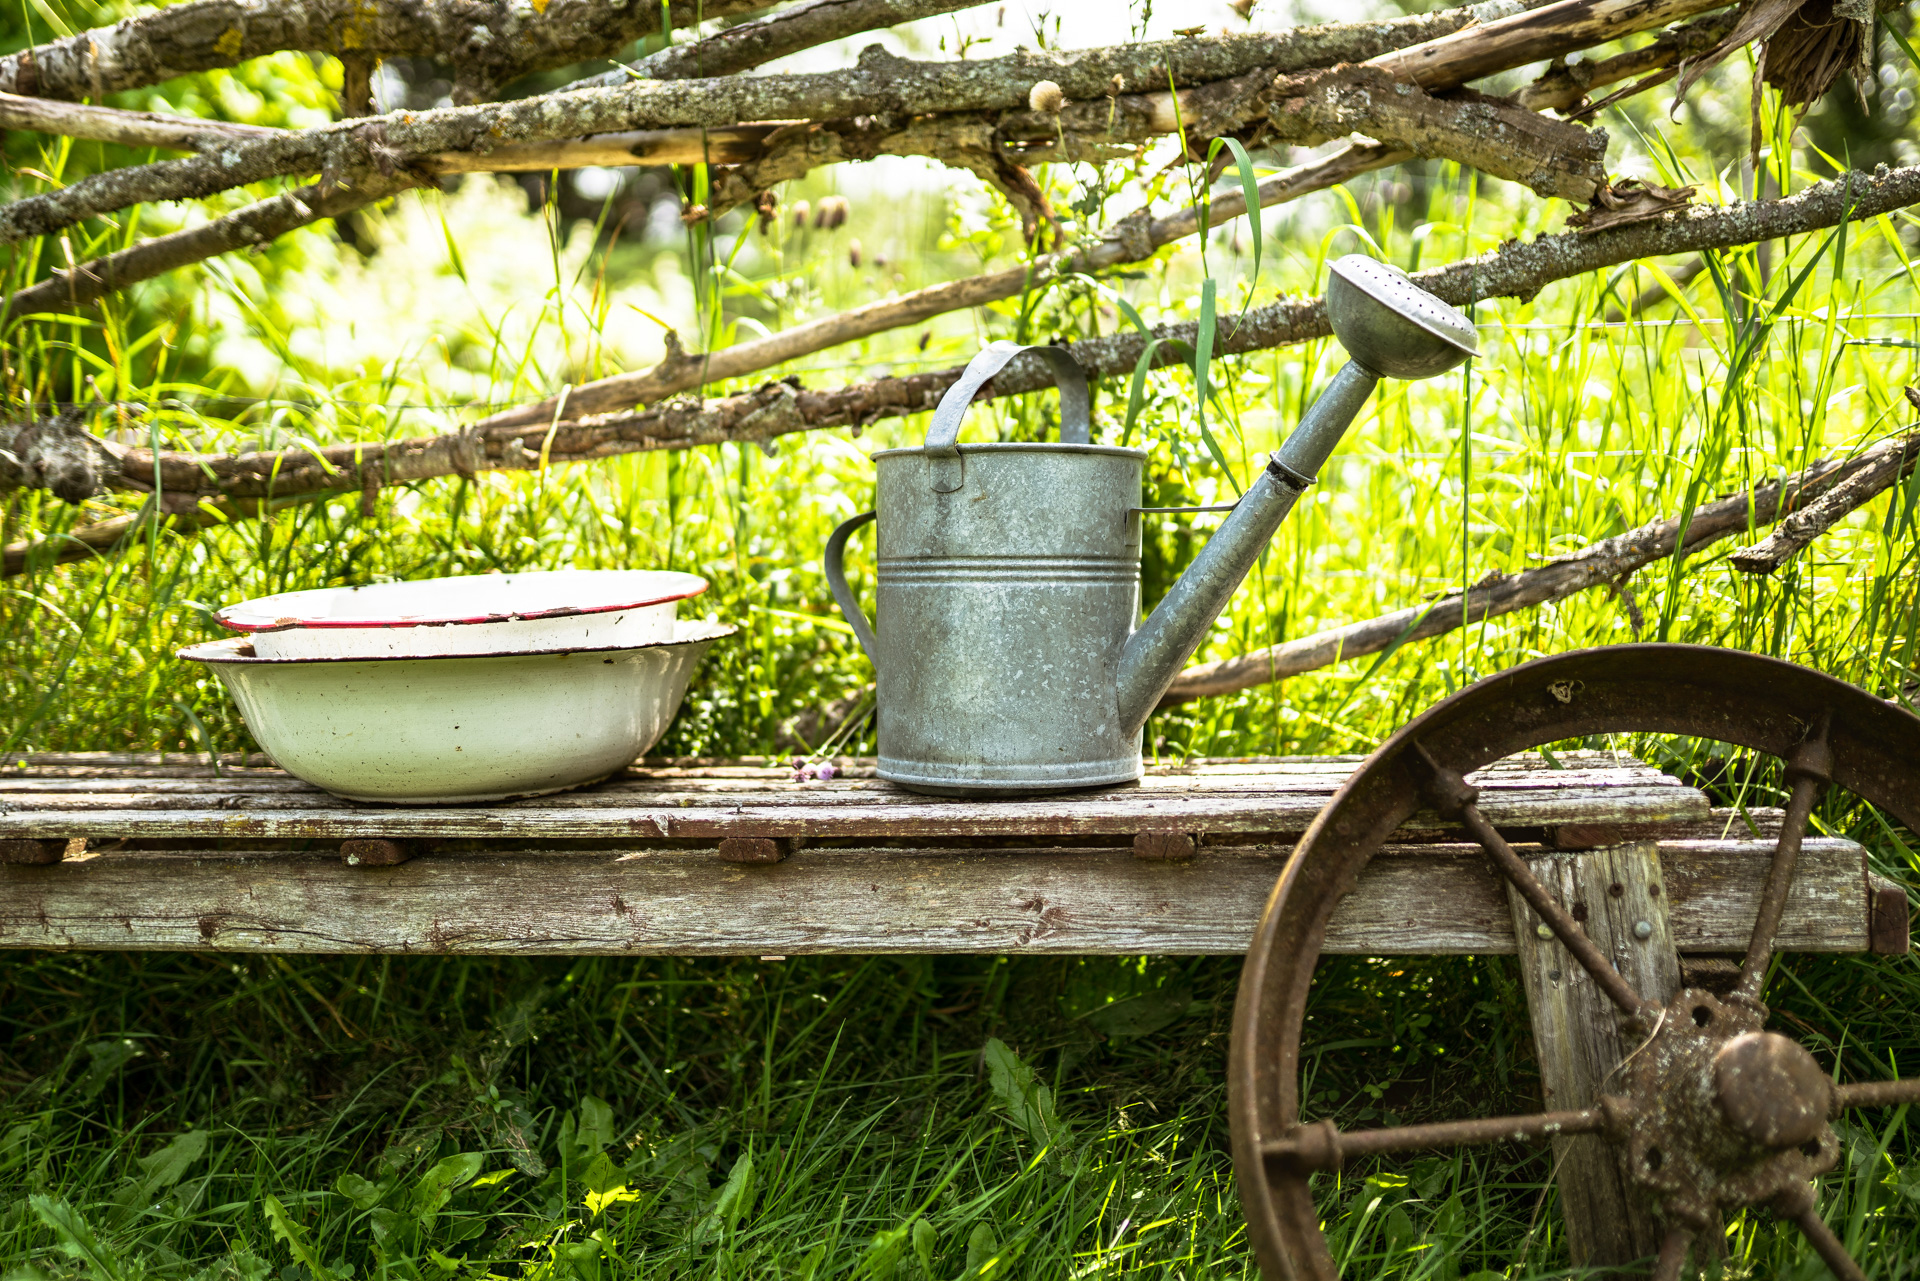 Promotional image of an Ontario farm with pots, pans and a watering can.